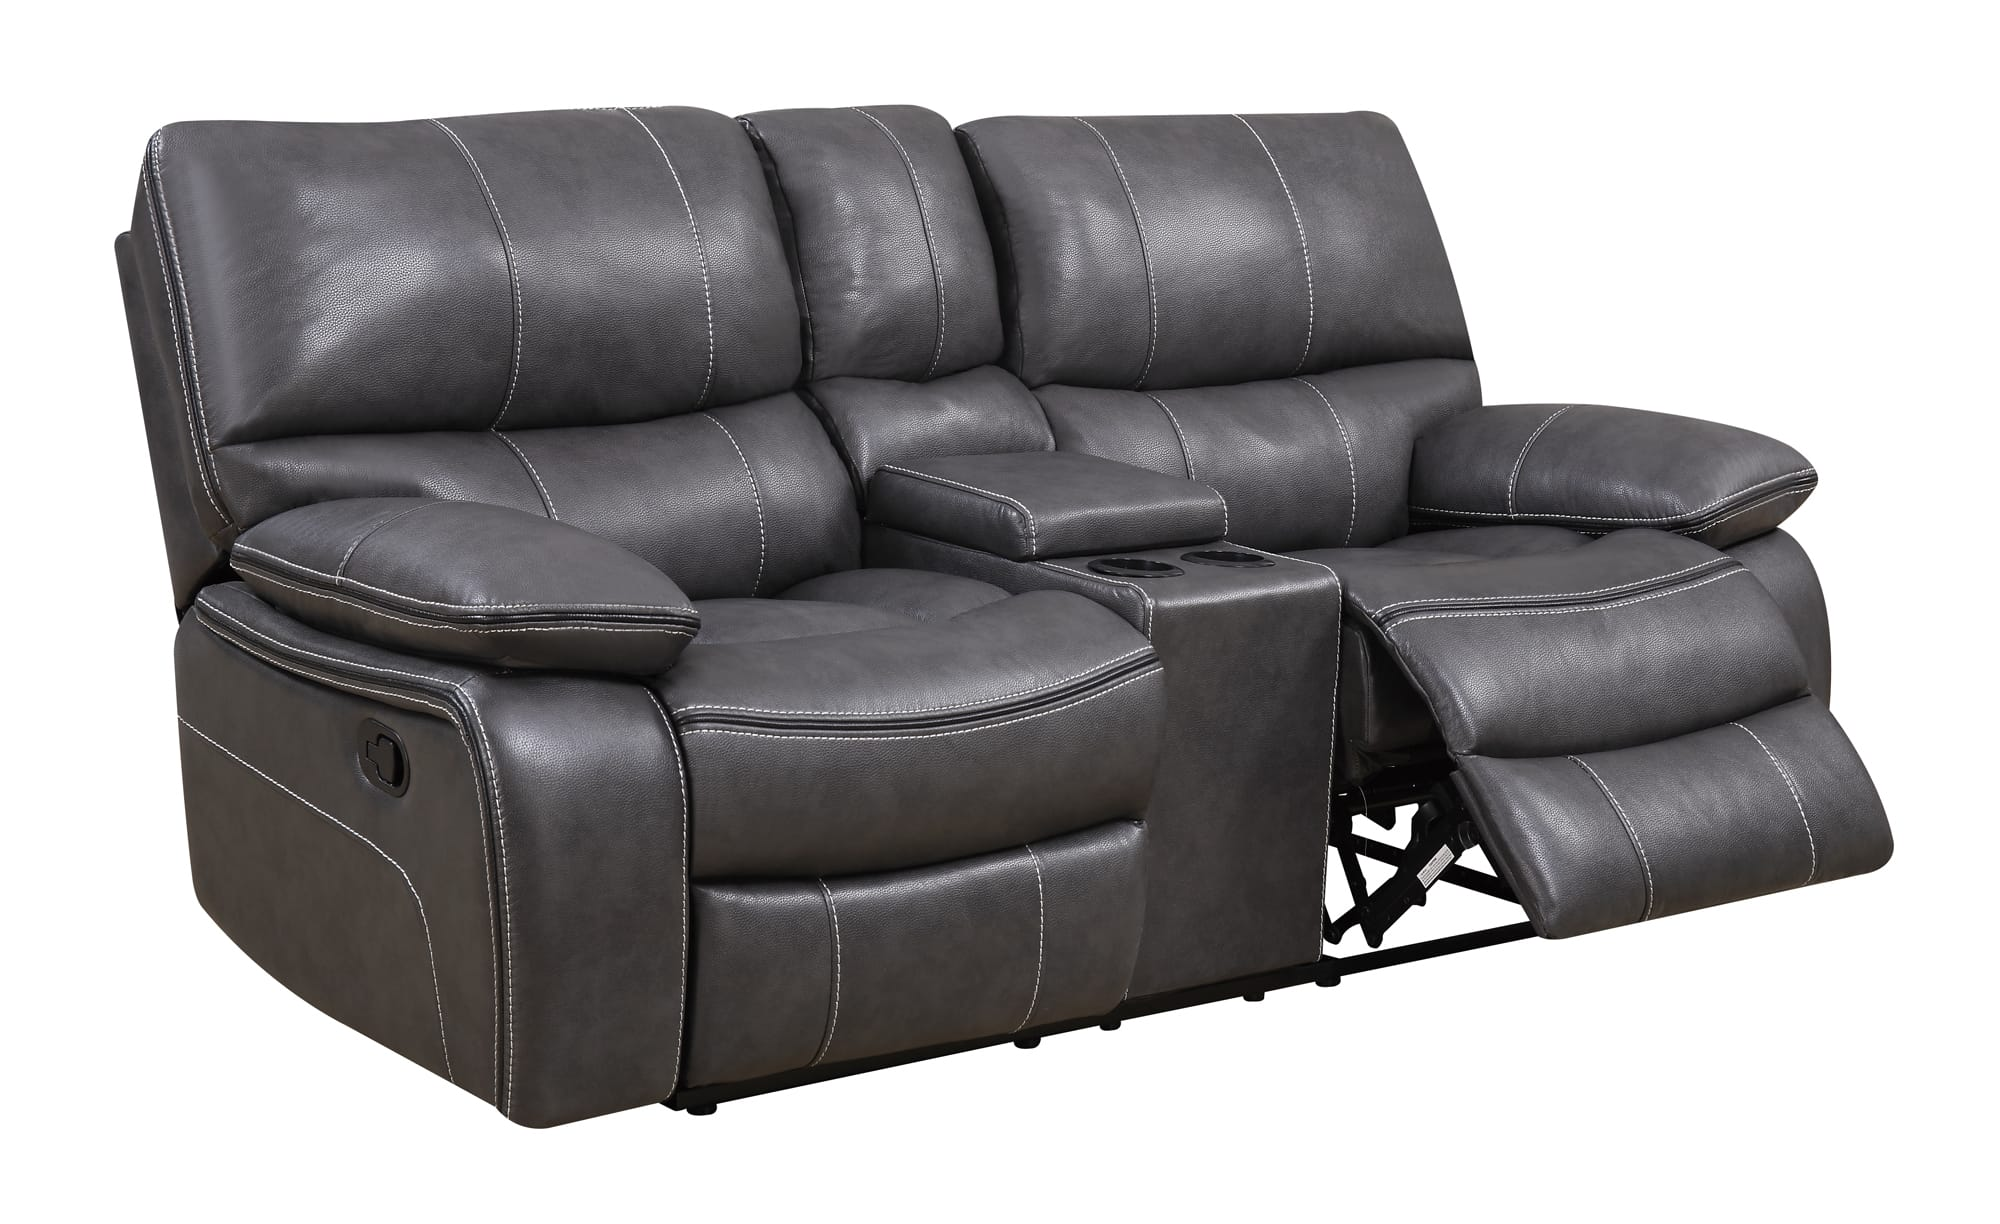 U0040 Grey Black Leather Console Reclining Loveseat By Global Furniture